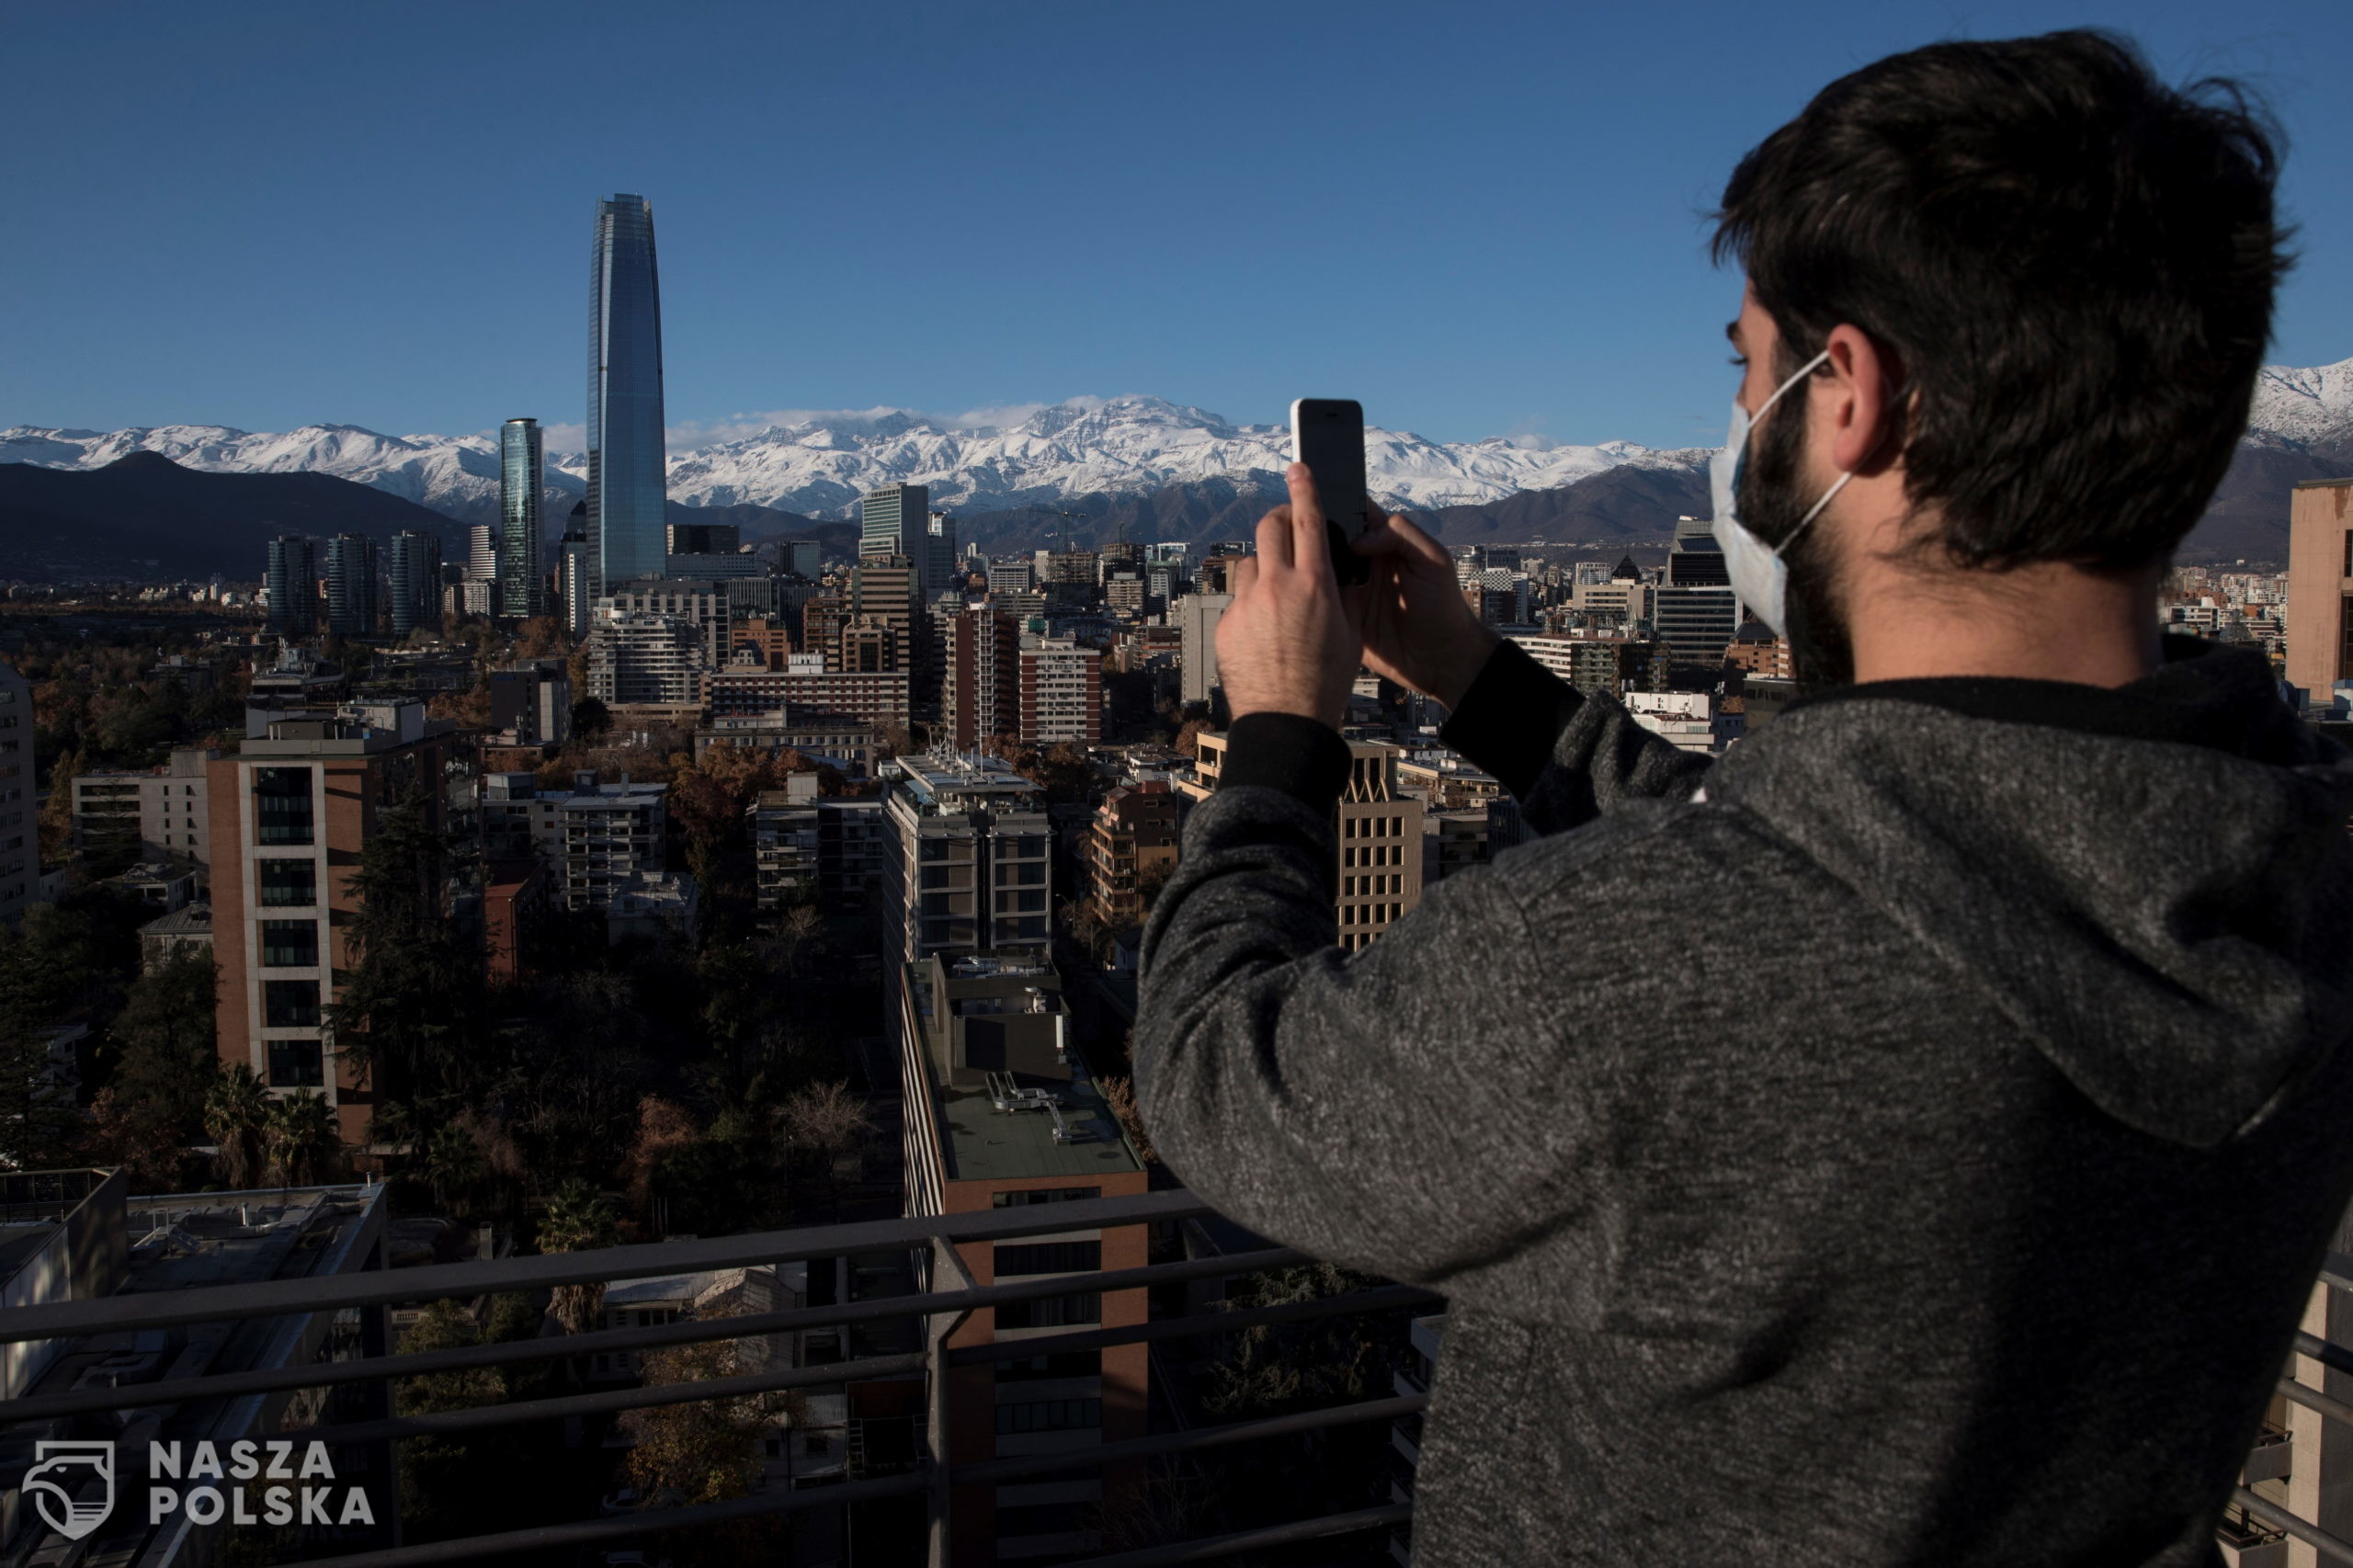 epa08481824 A man takes a picture of the Andes mount range overlooking Santiago, Chile, 12 June 2020.  EPA/Alberto Valdes  Dostawca: PAP/EPA.